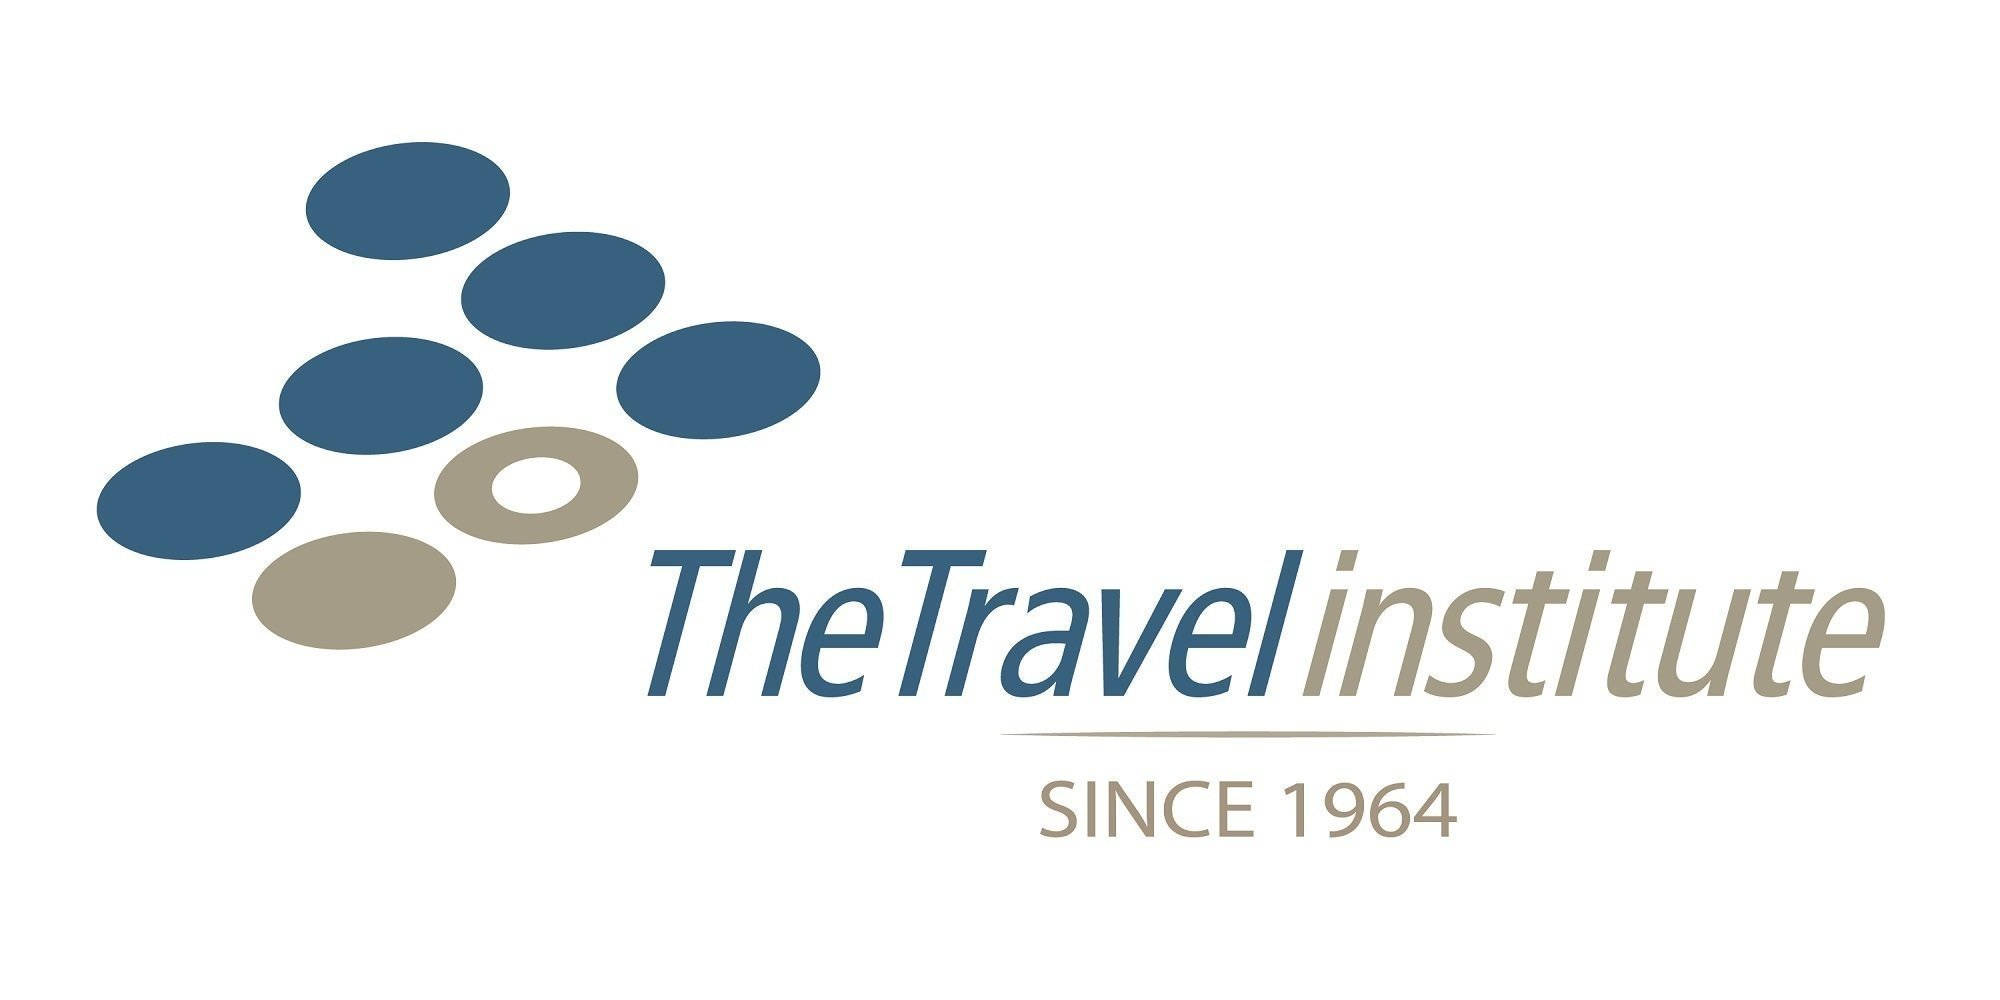 Overtourism - Be Part of The Solution